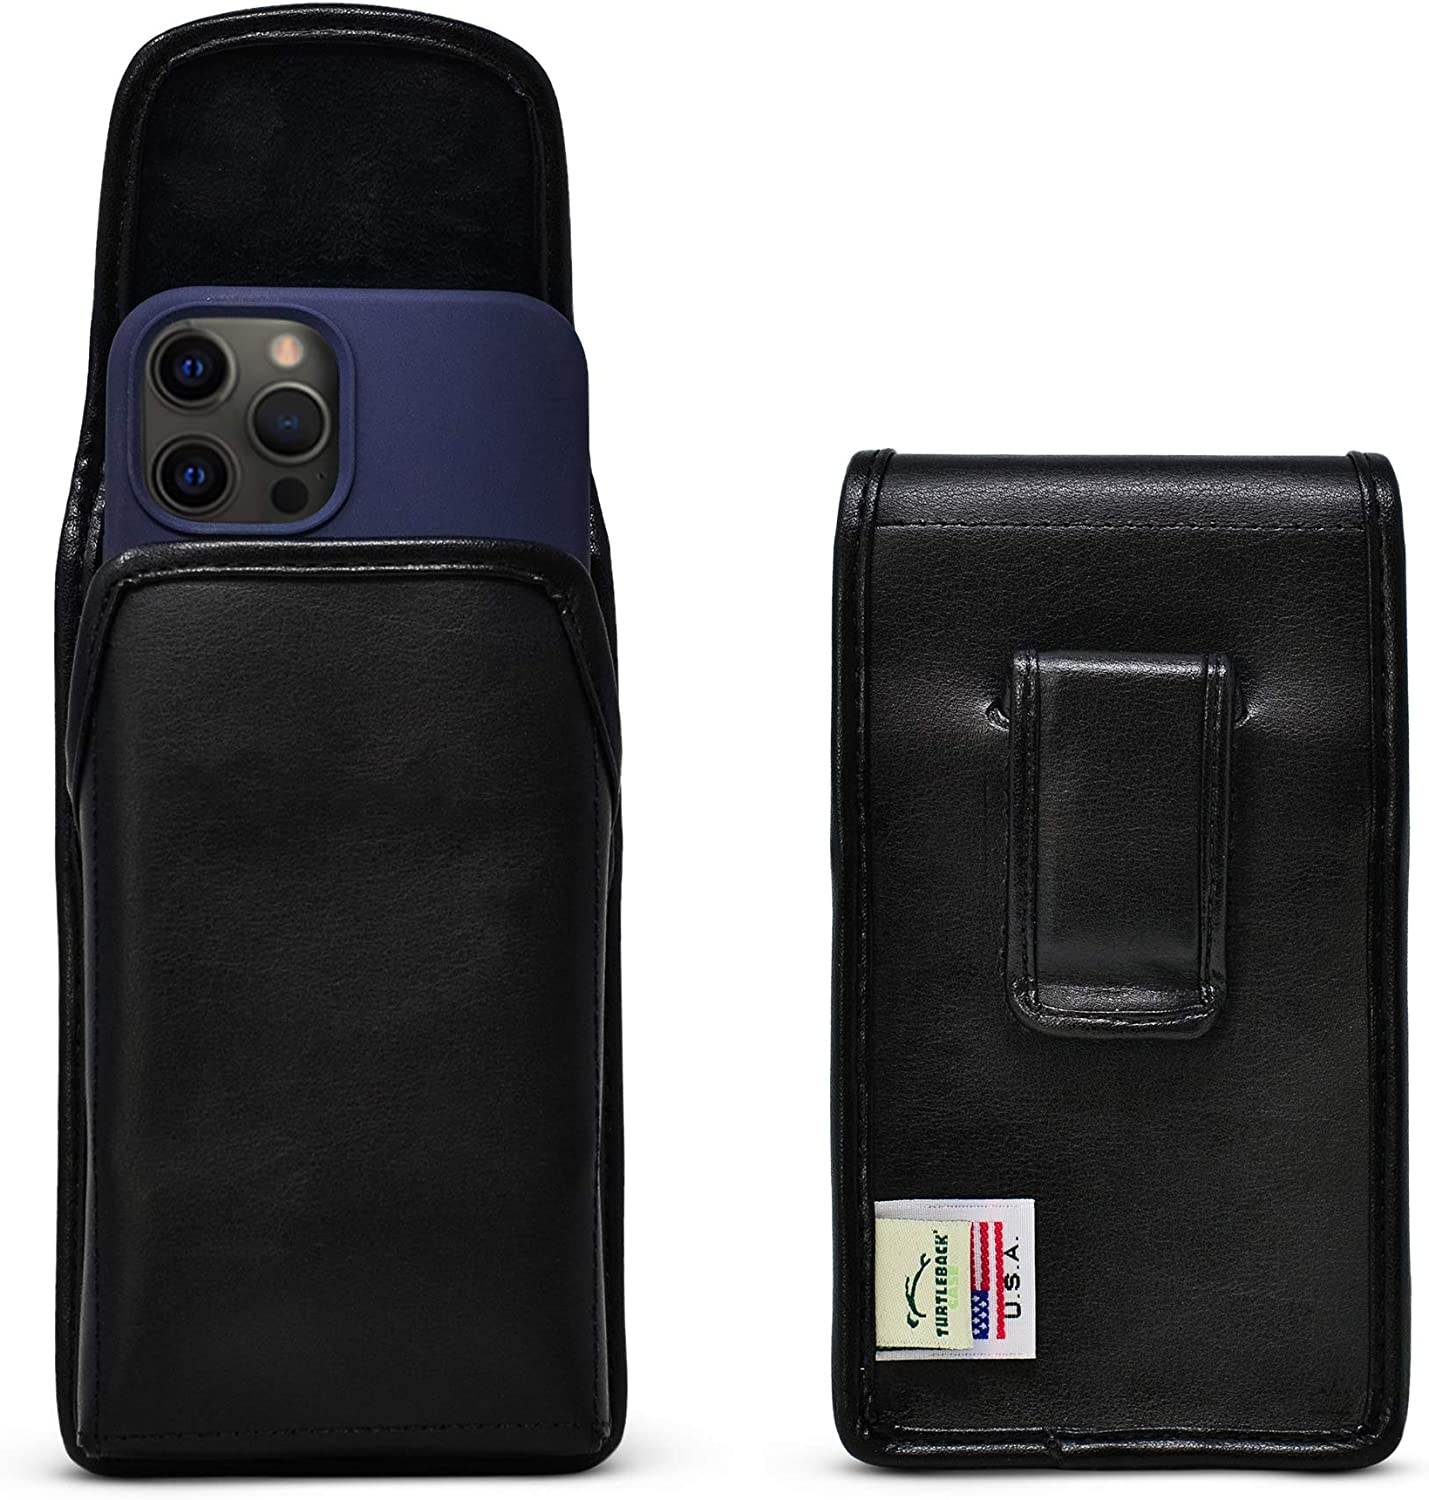 Turtleback Belt Clip Designed for iPhone 13 Pro, 13/12 & 12 Pro Vertical Holster Case Black Leather Pouch with Executive Clip, Made in USA